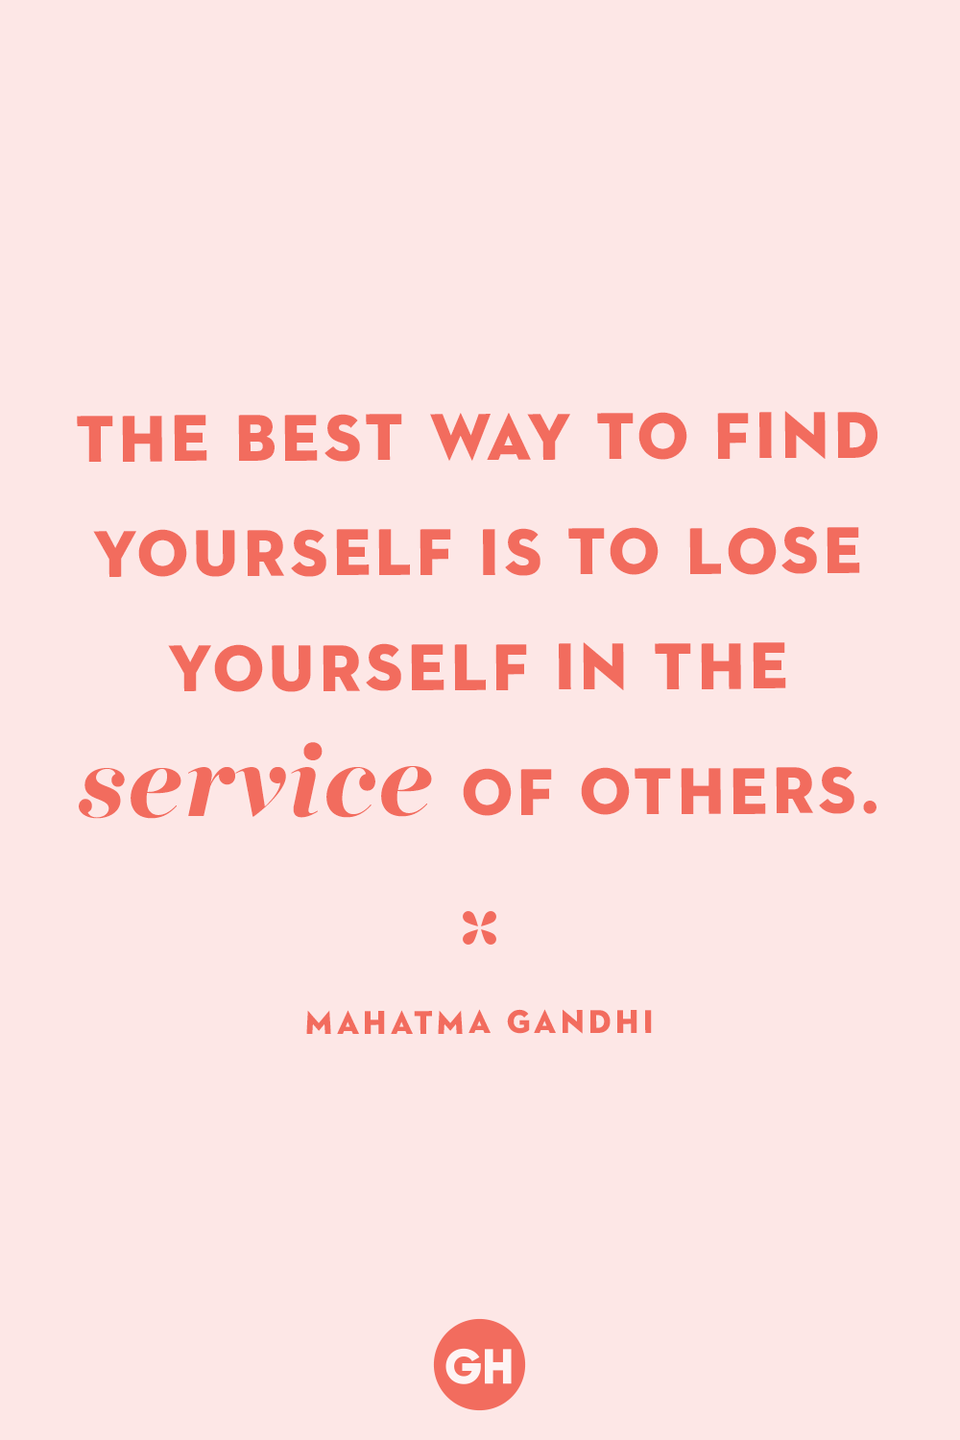 <p>The best way to find yourself is to lose yourself in the service of others.</p>